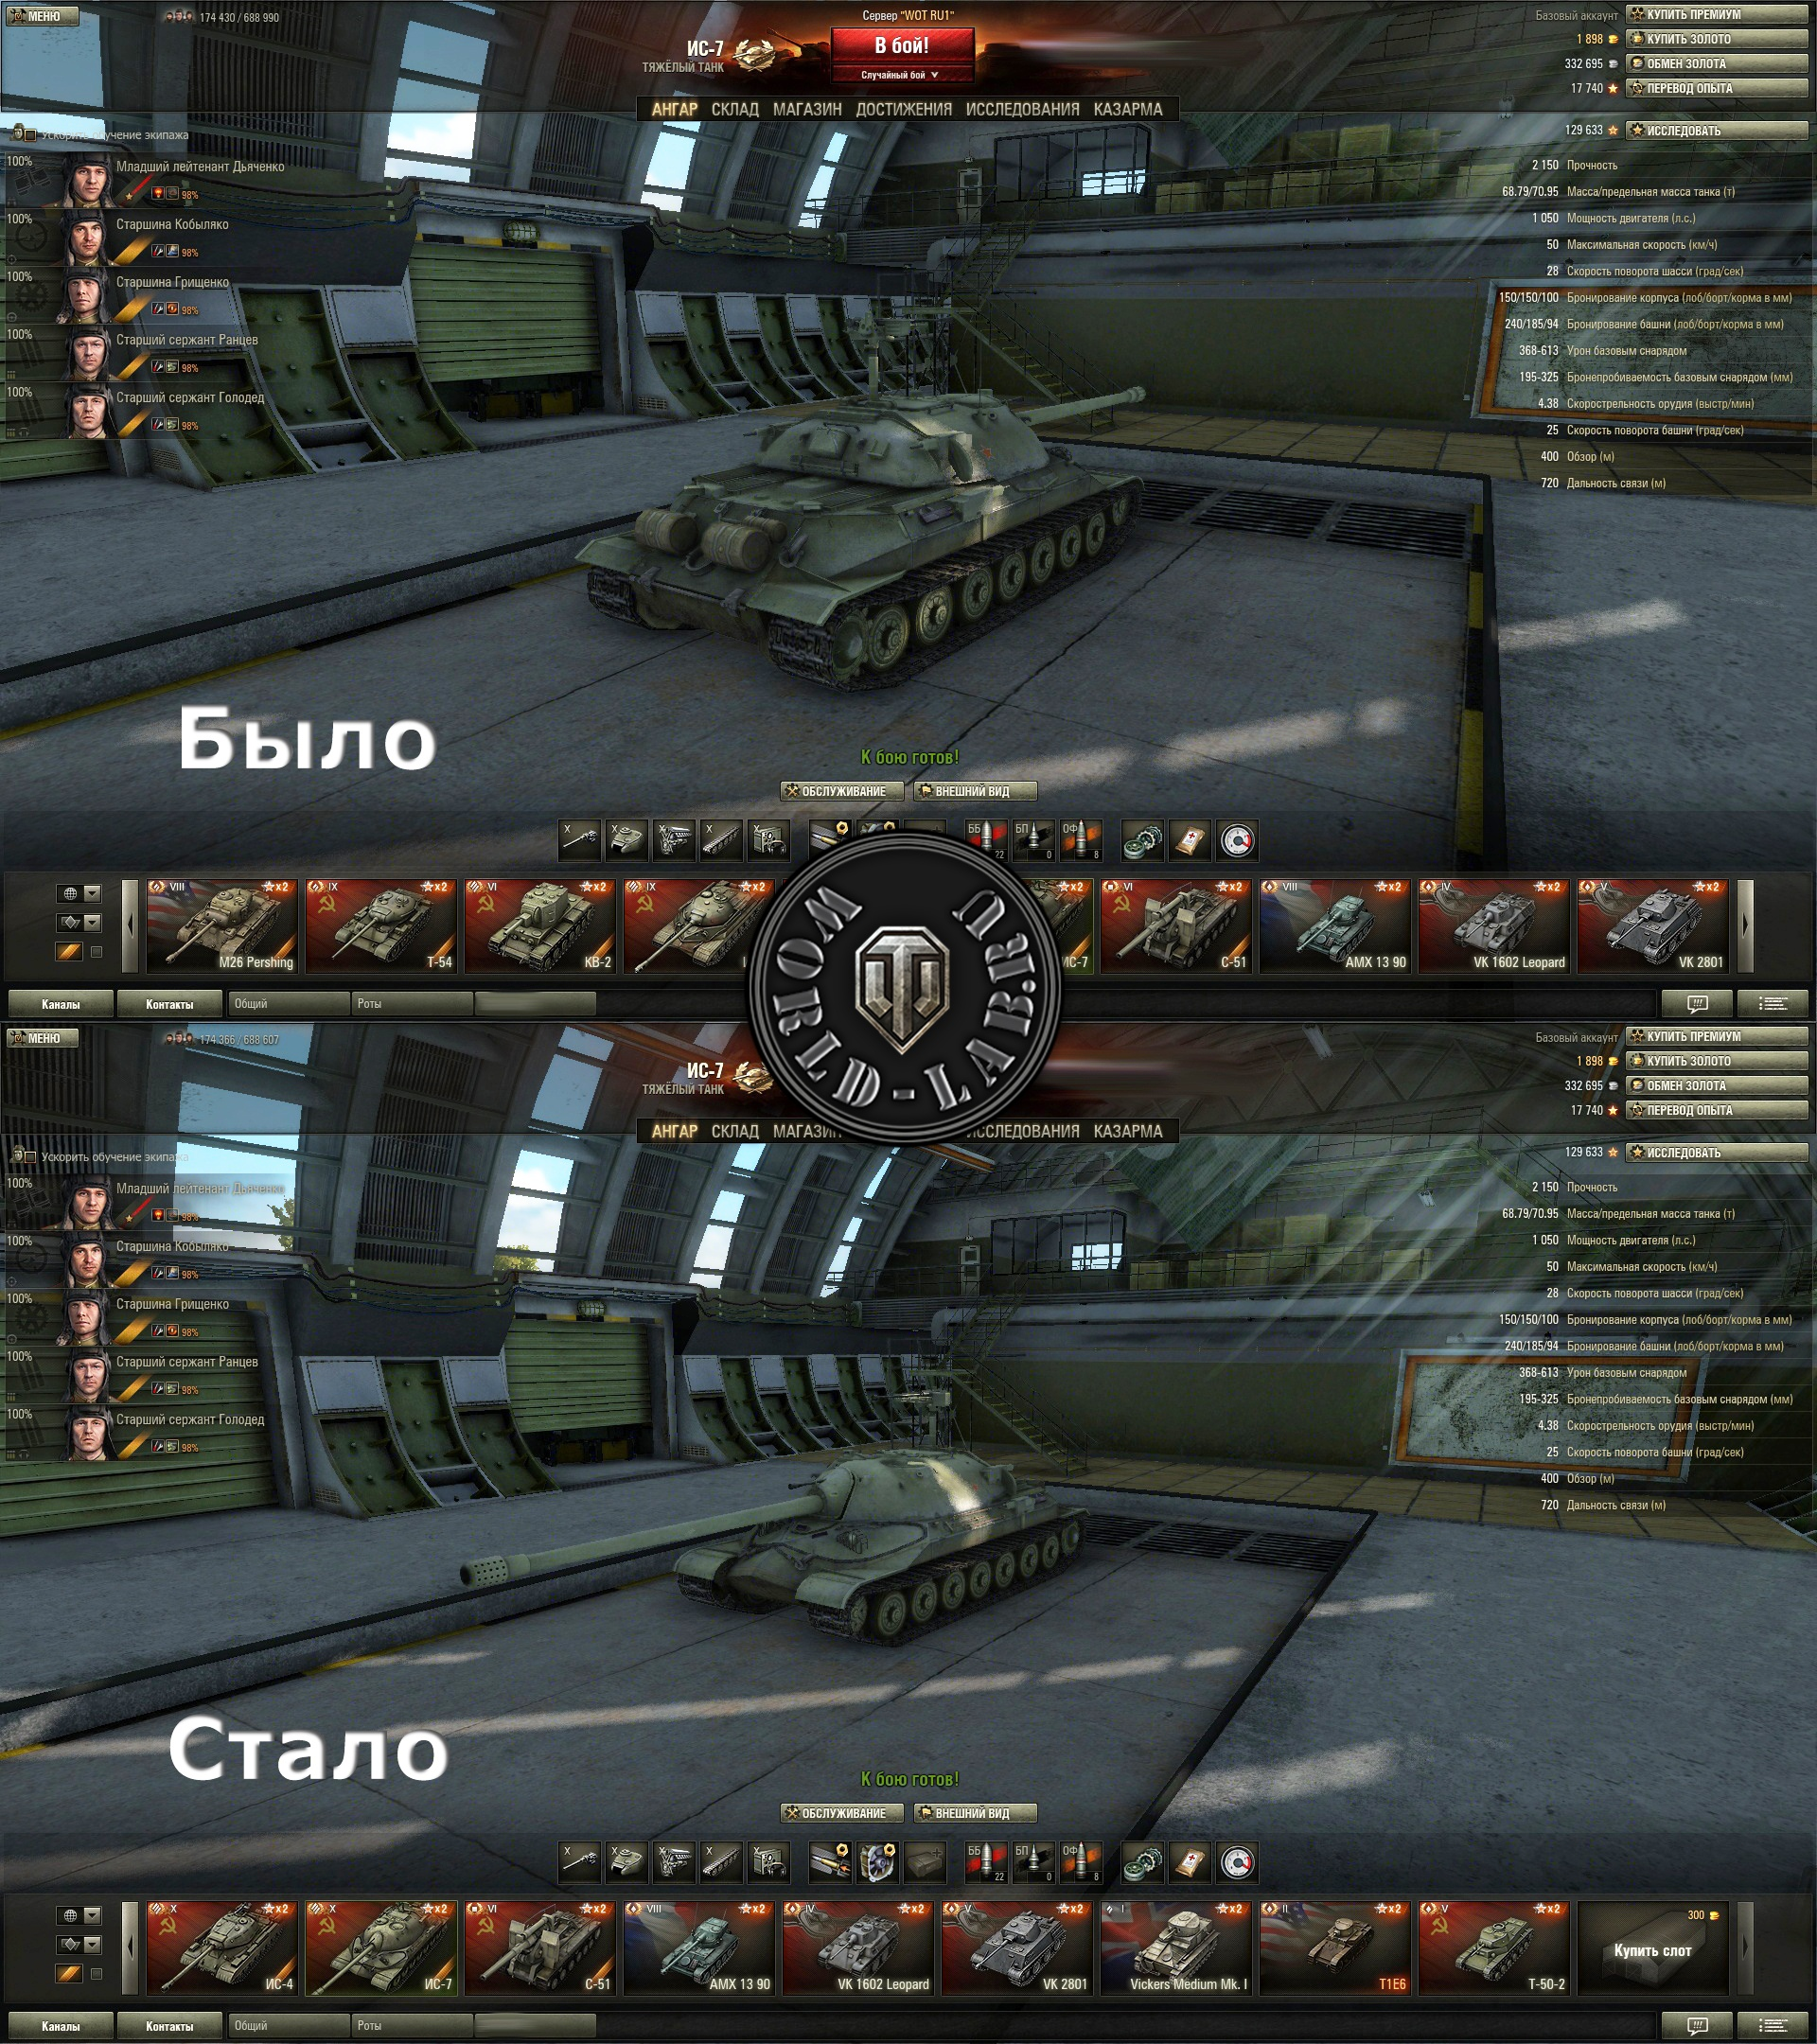 Стих про world of tanks